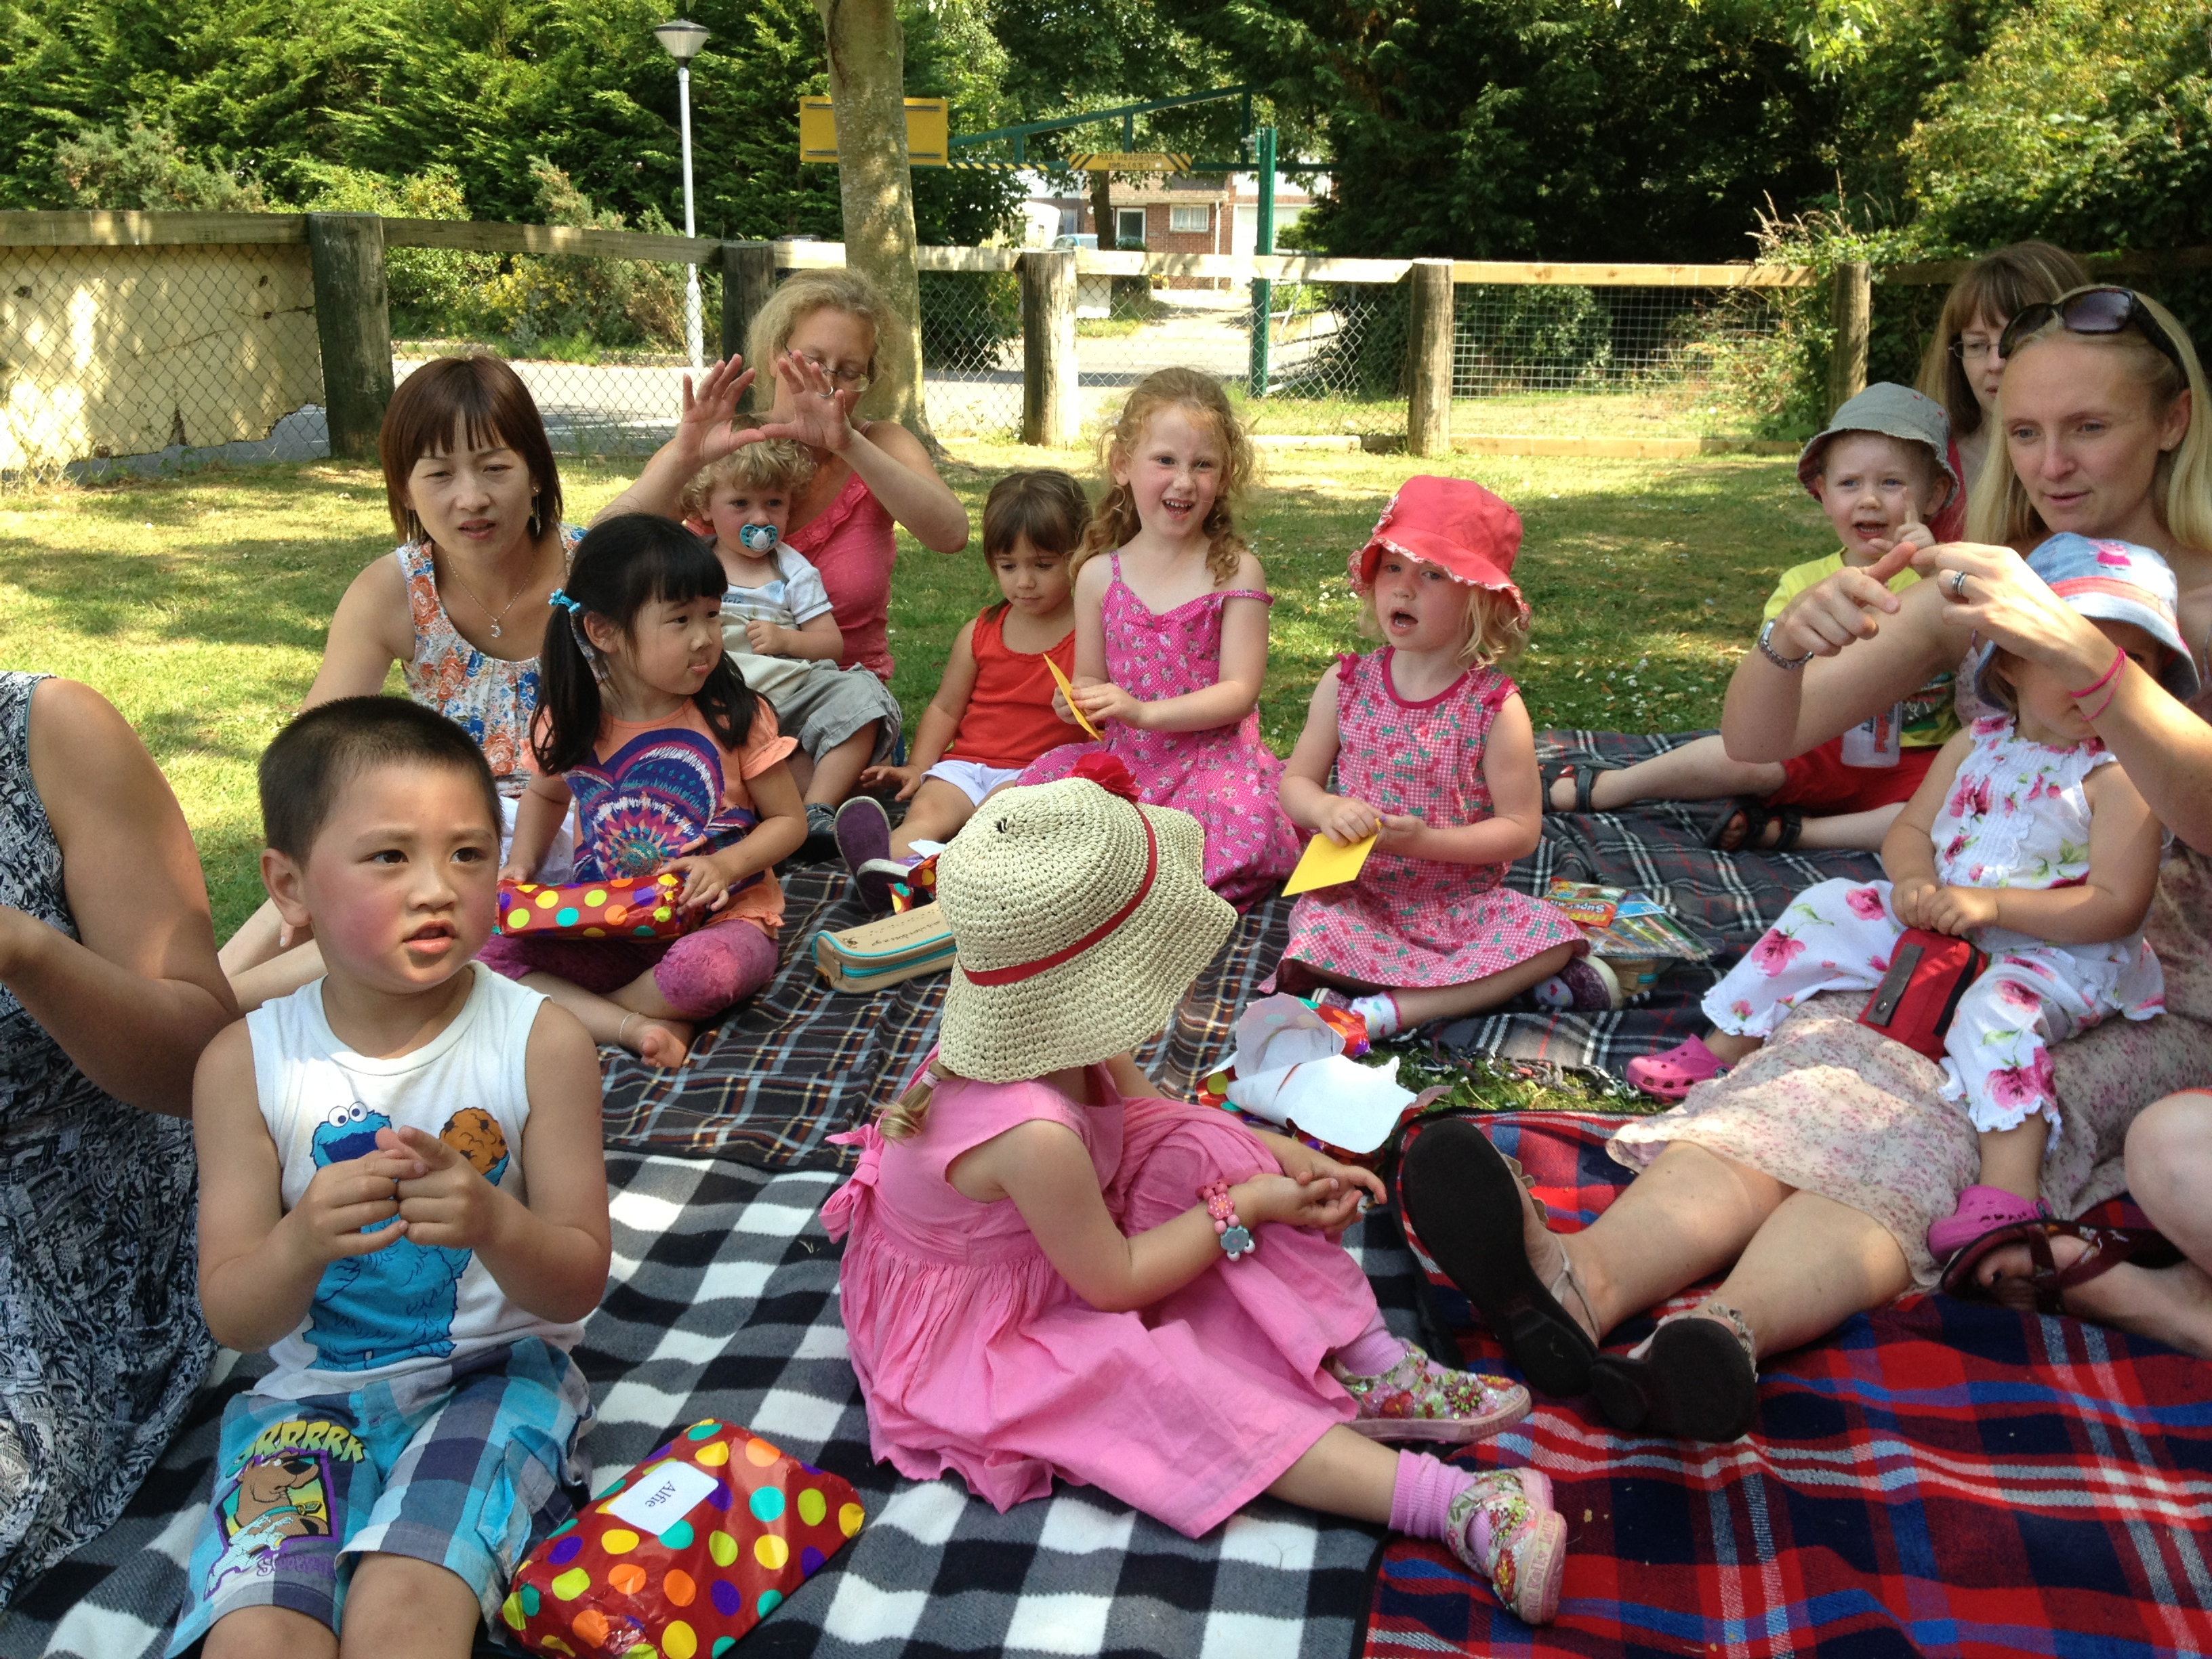 Wednesday Club Summer Picnic